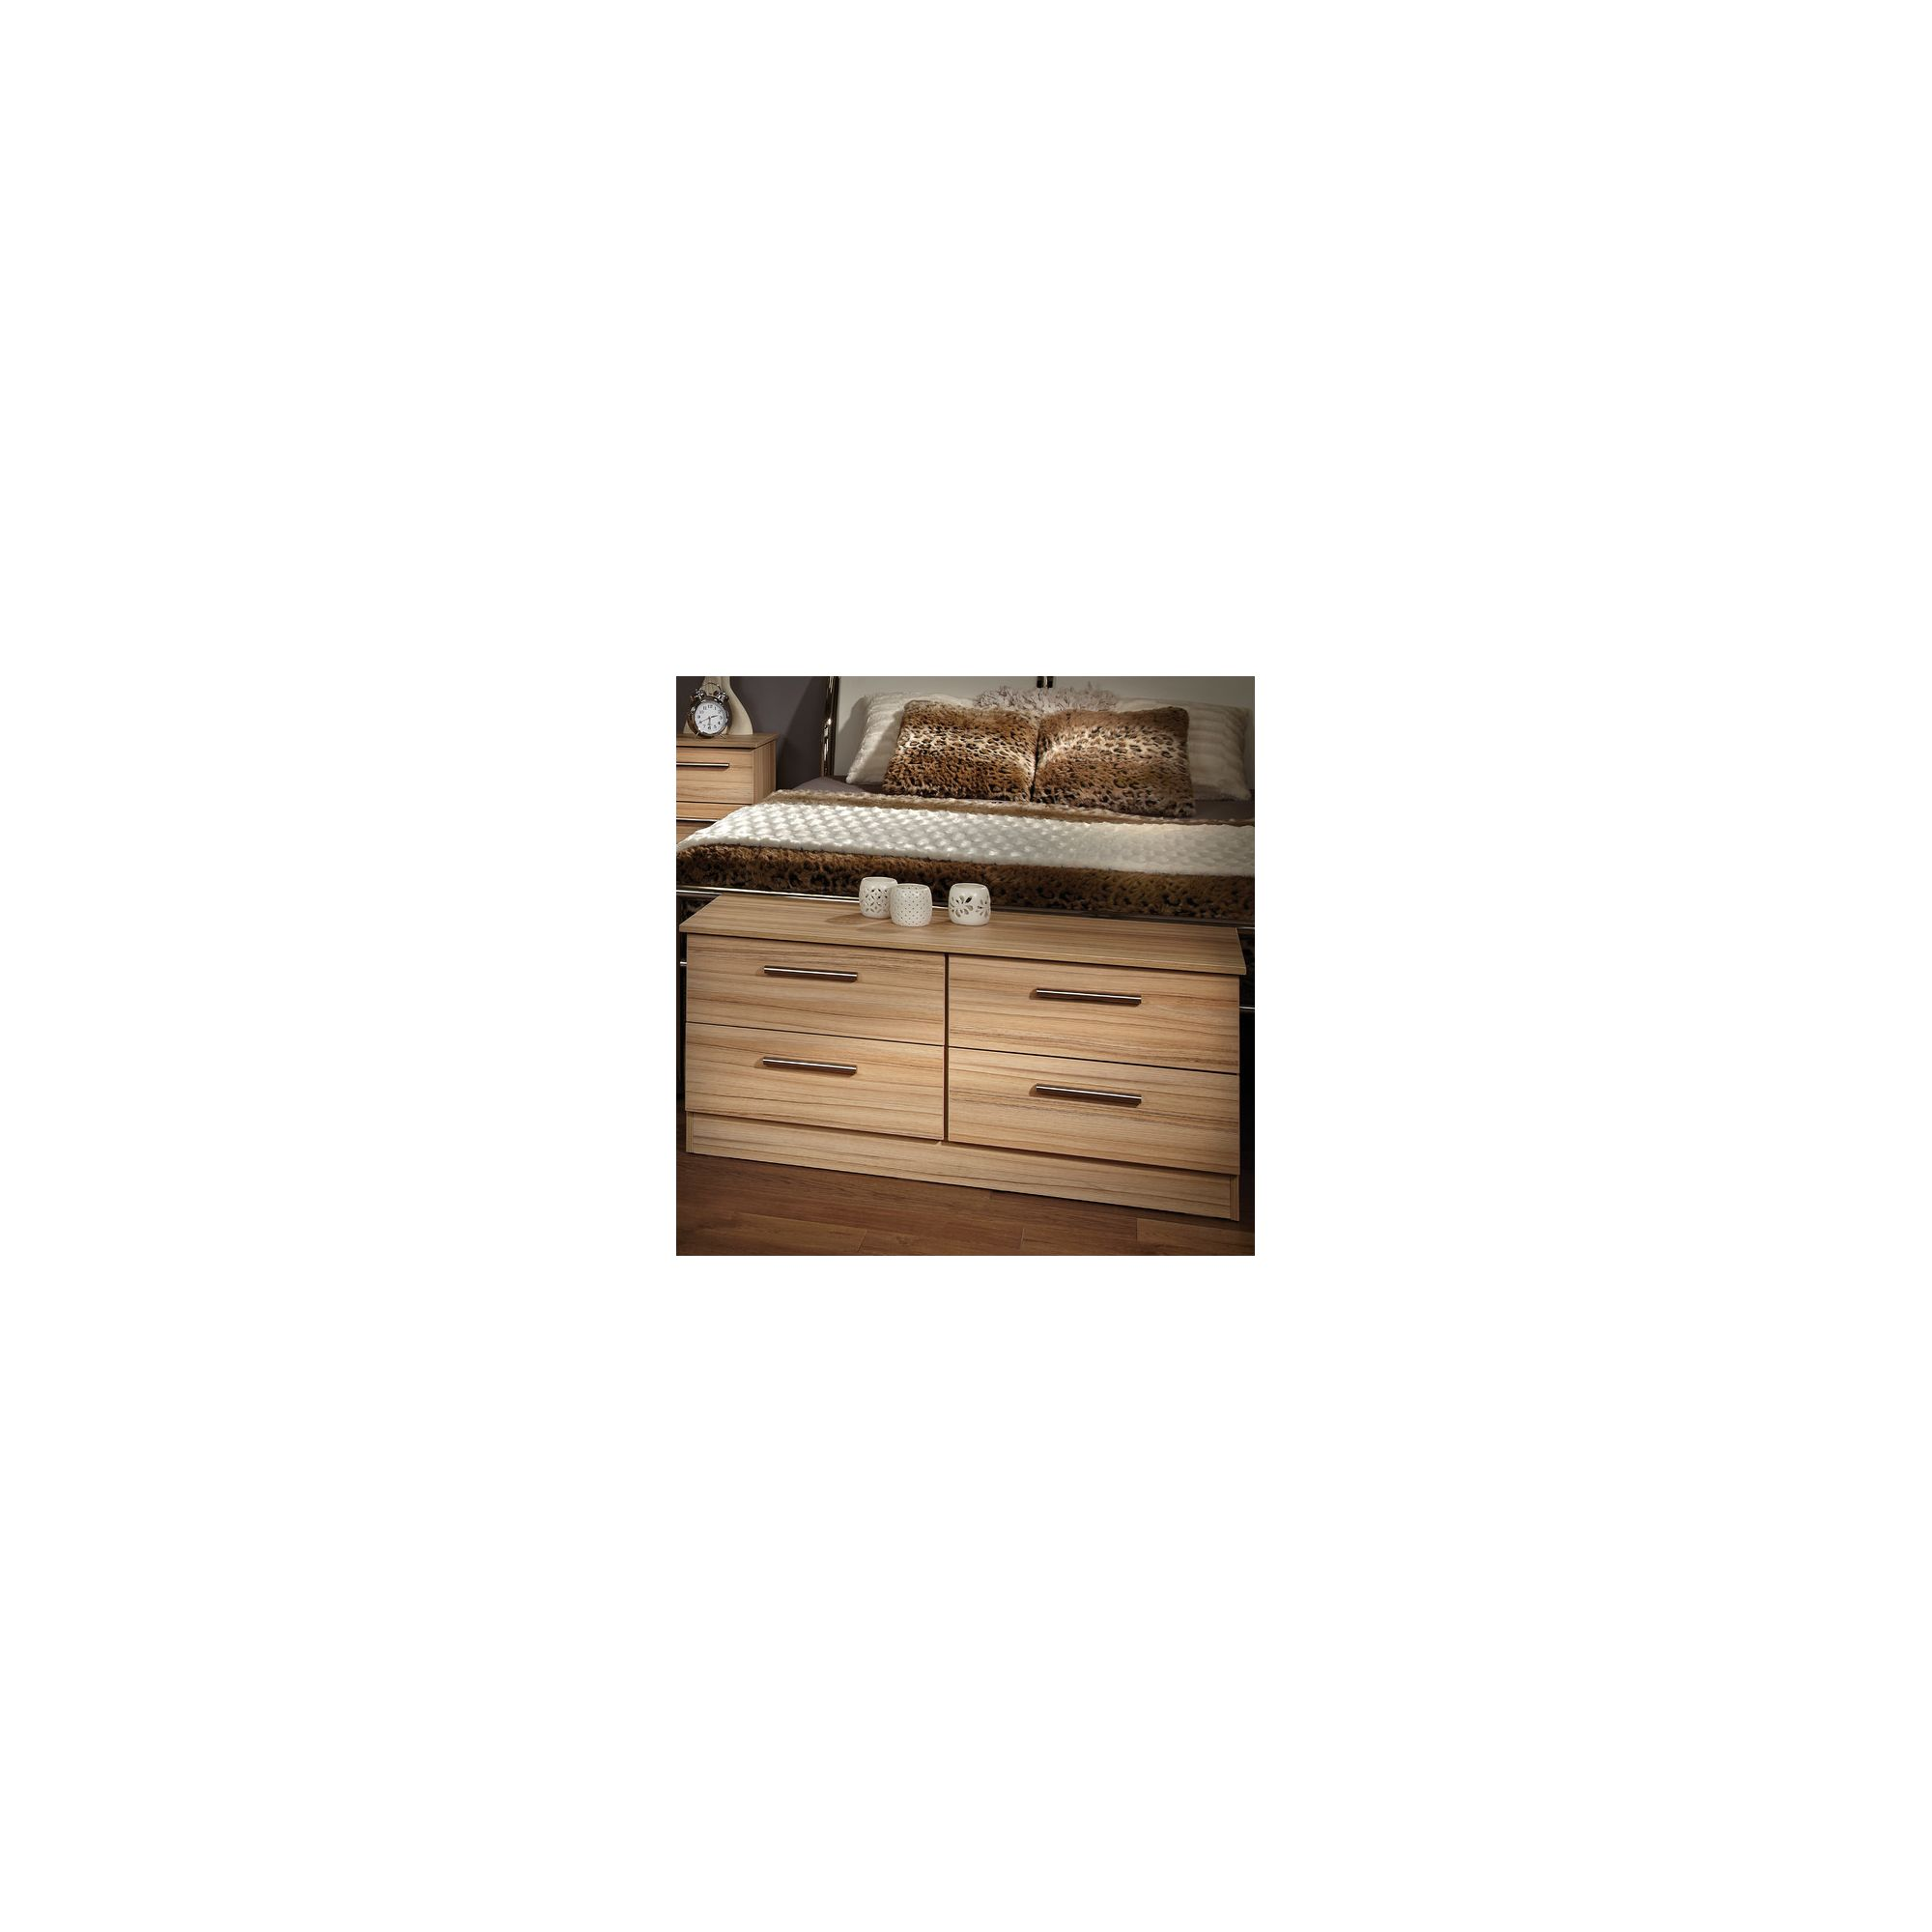 Welcome Furniture Contrast 4 Drawer Bed Box - Cocobola at Tesco Direct